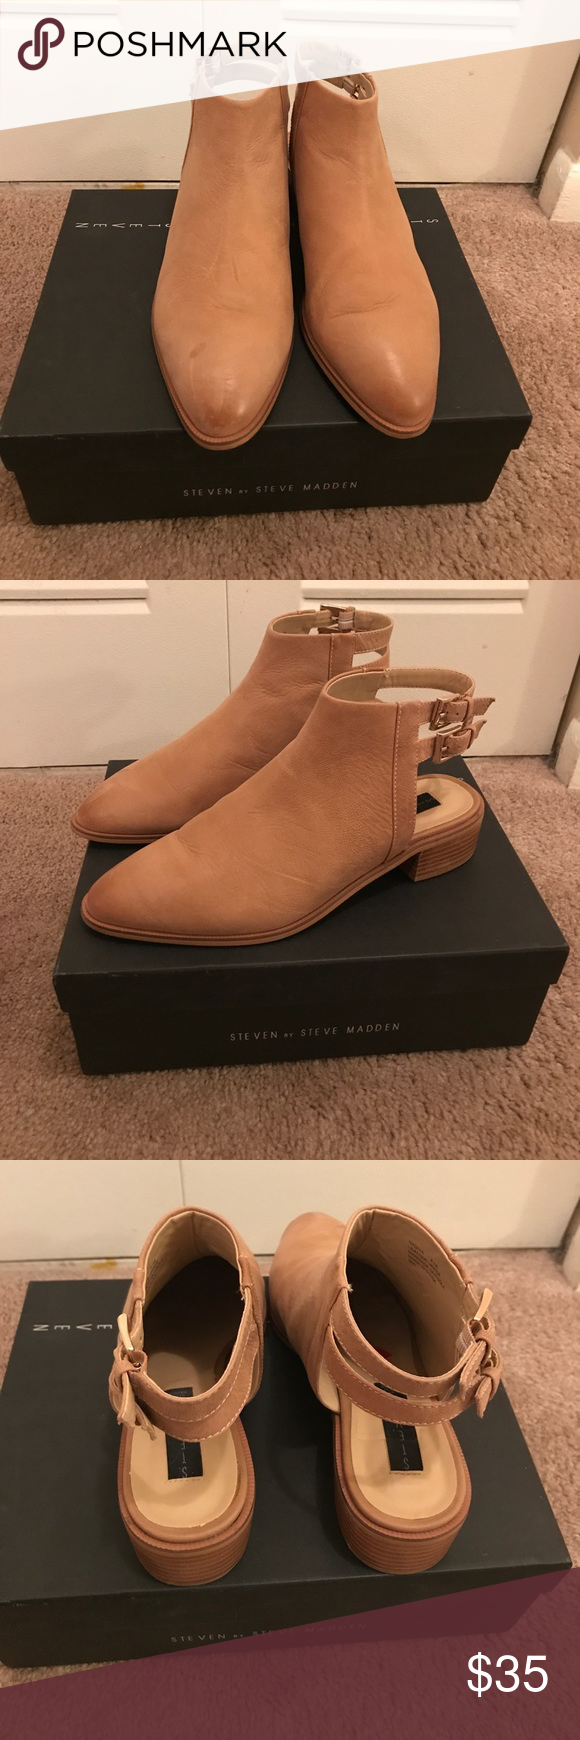 Steven by Steve Madden Nadiya Leather Booties Only worn once! Size In color  taupe le. One and a half inch heel. Steven By Steve Madden Shoes Ankle Boots  & ...